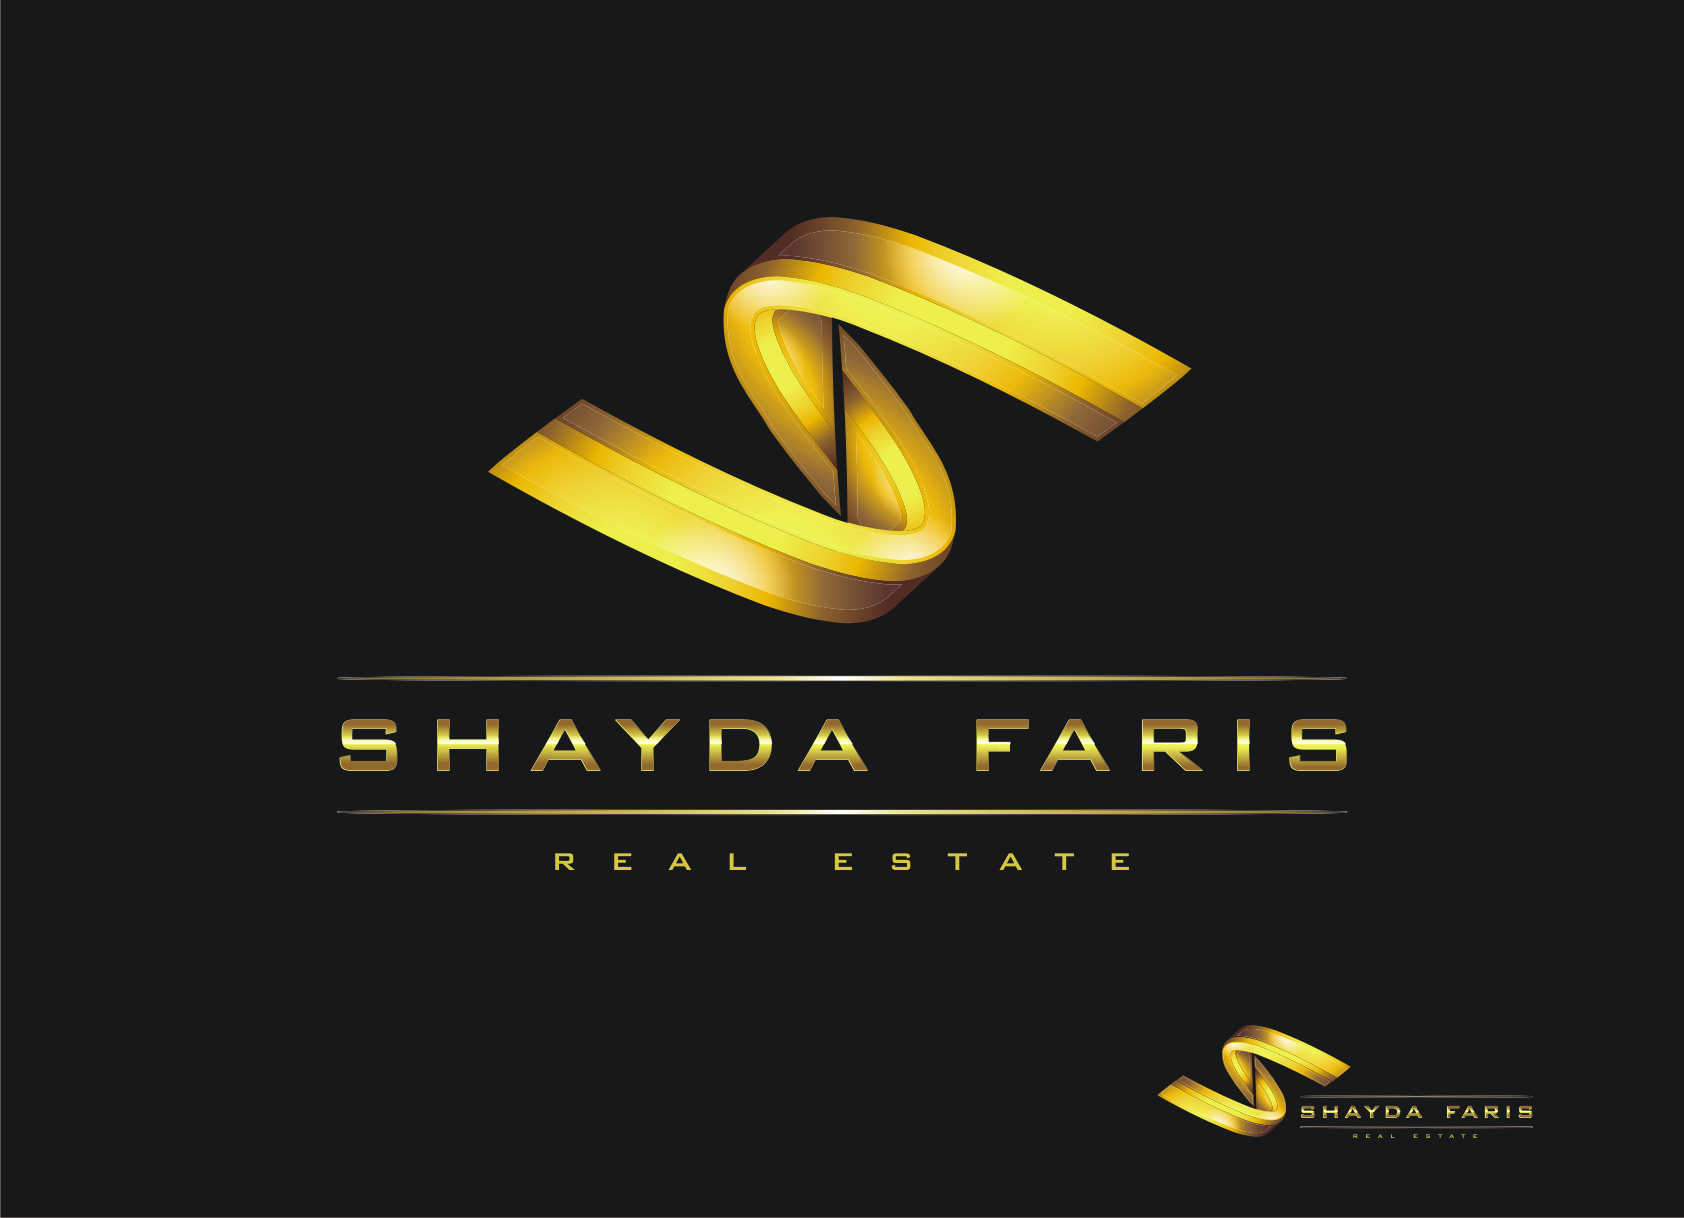 Unique Logo Design Wanted for Shayda Faris | HiretheWorld